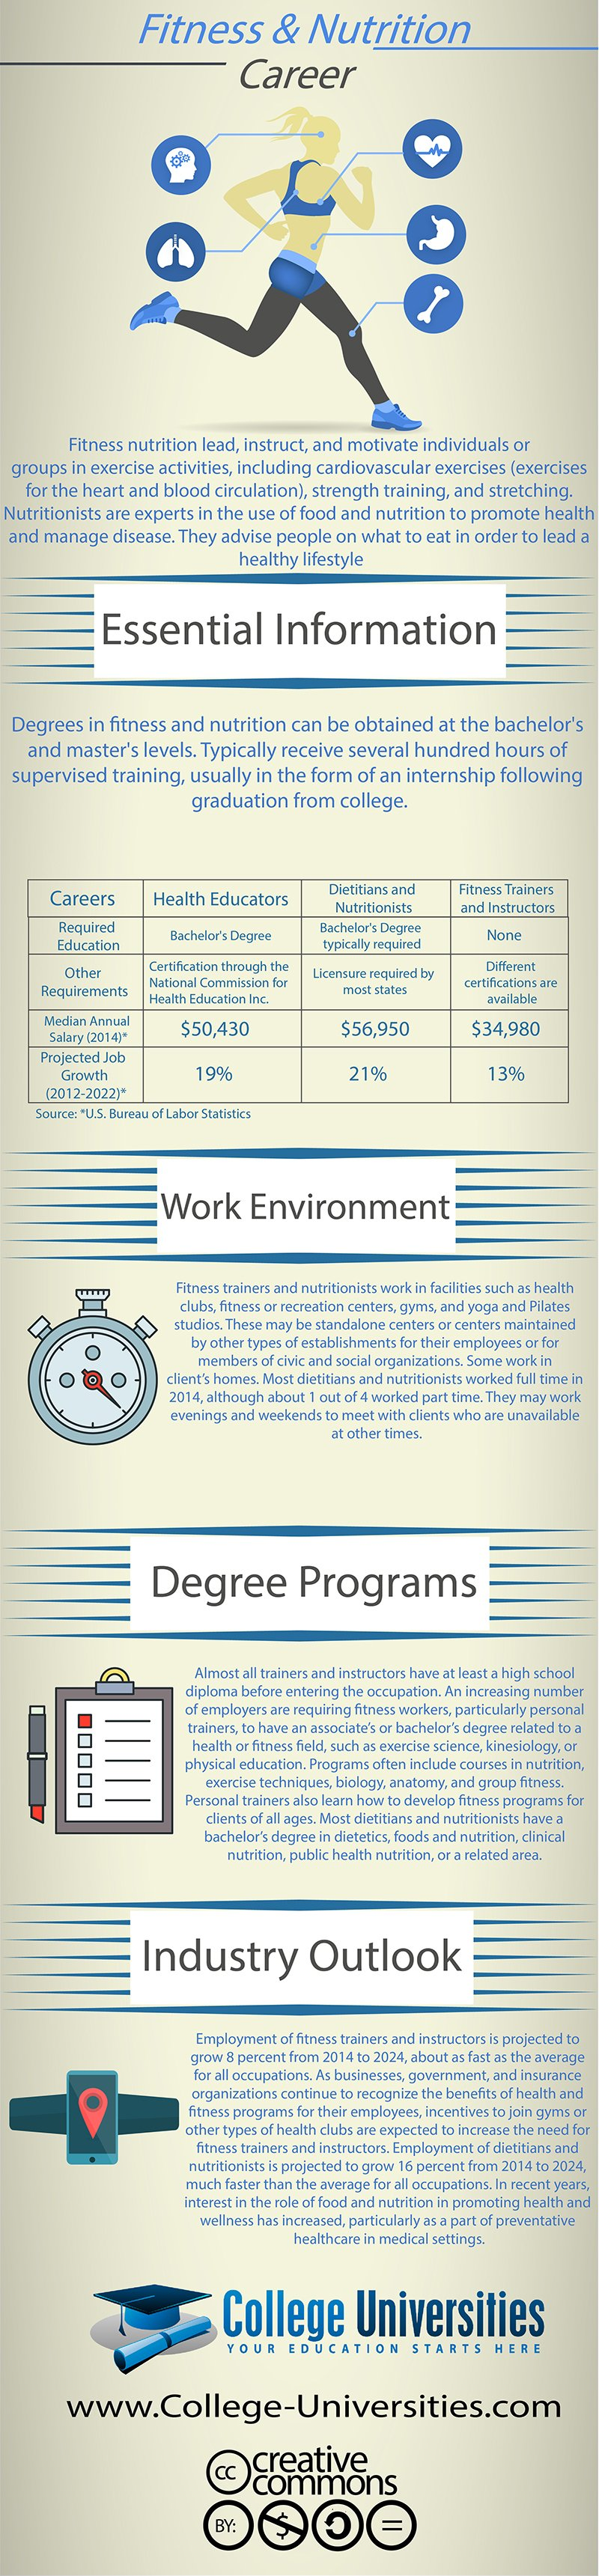 Fitness And Nutrition Career Training Infographic